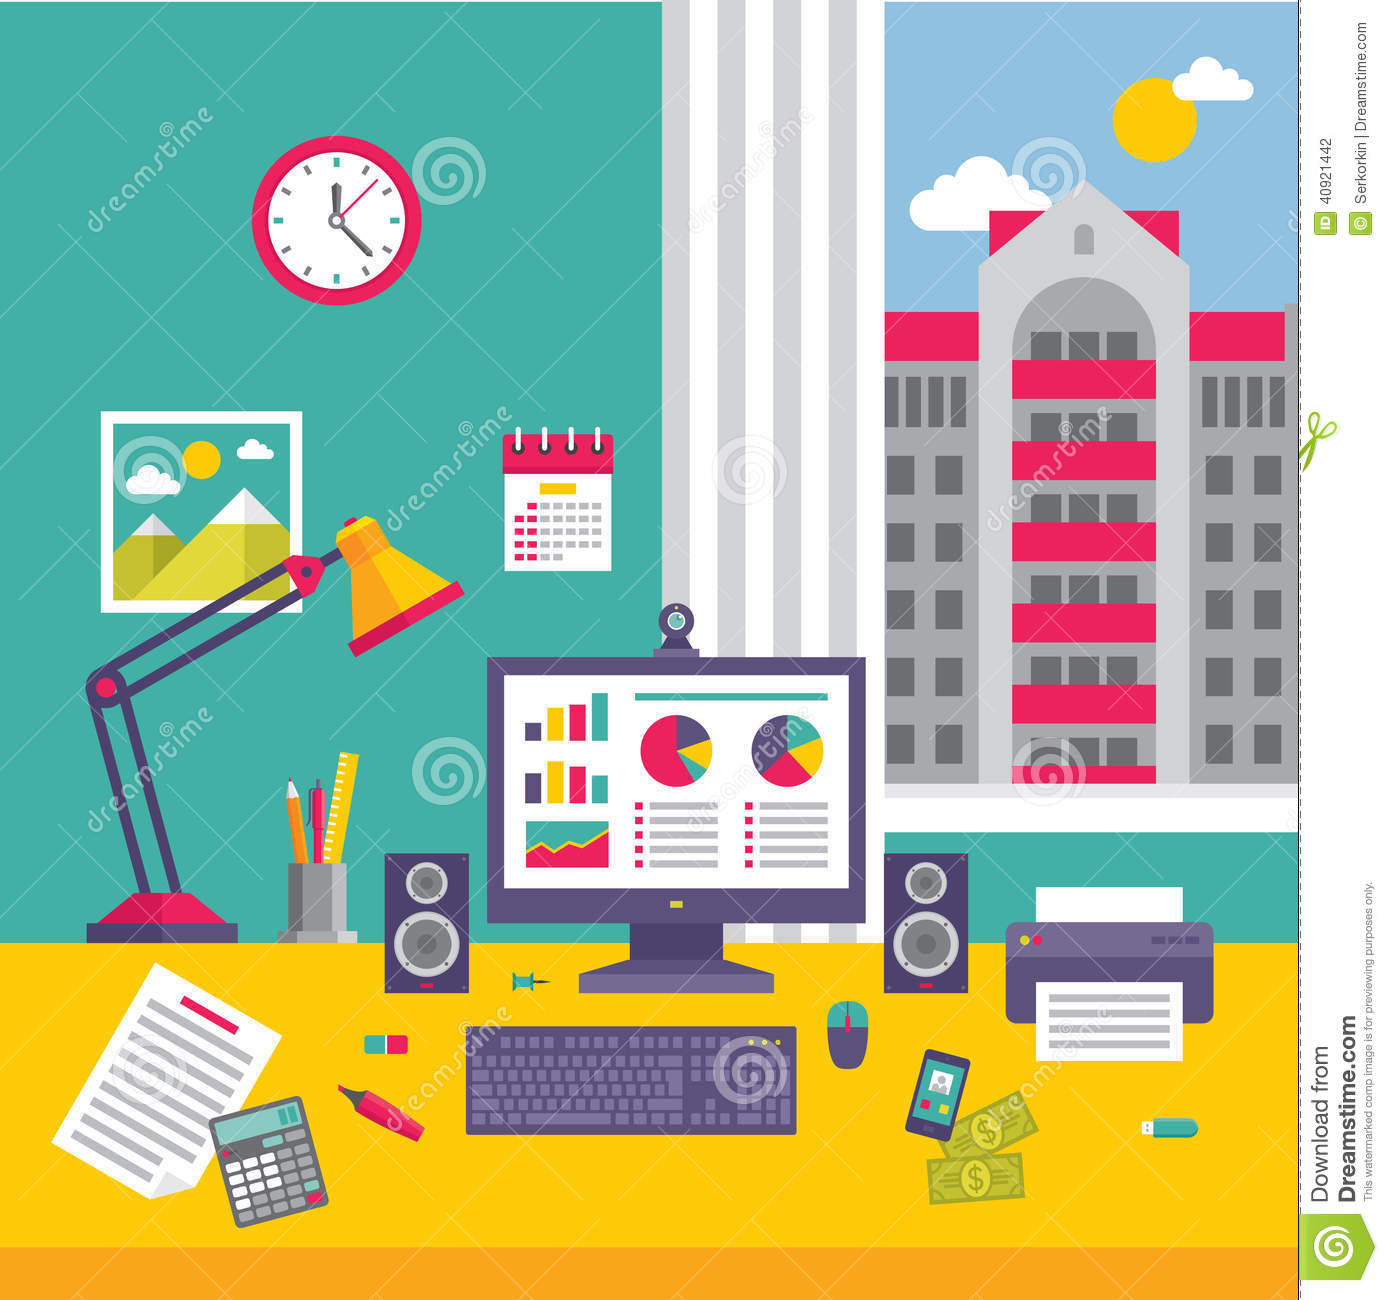 Business Office Workplace In Flat Design Style Stock